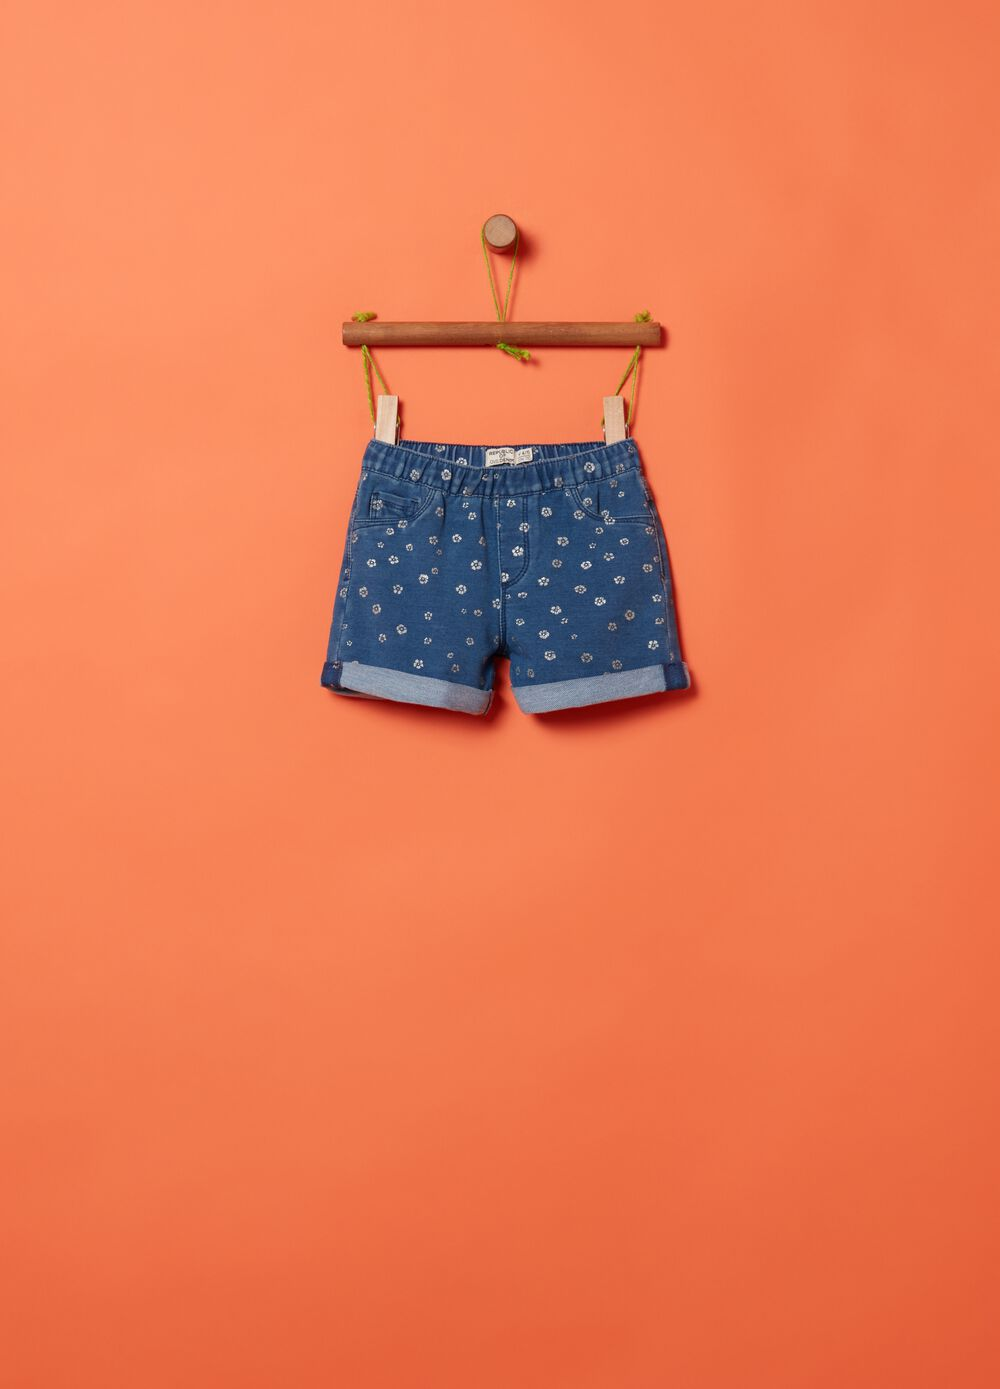 Shorts in French terry denim with pattern